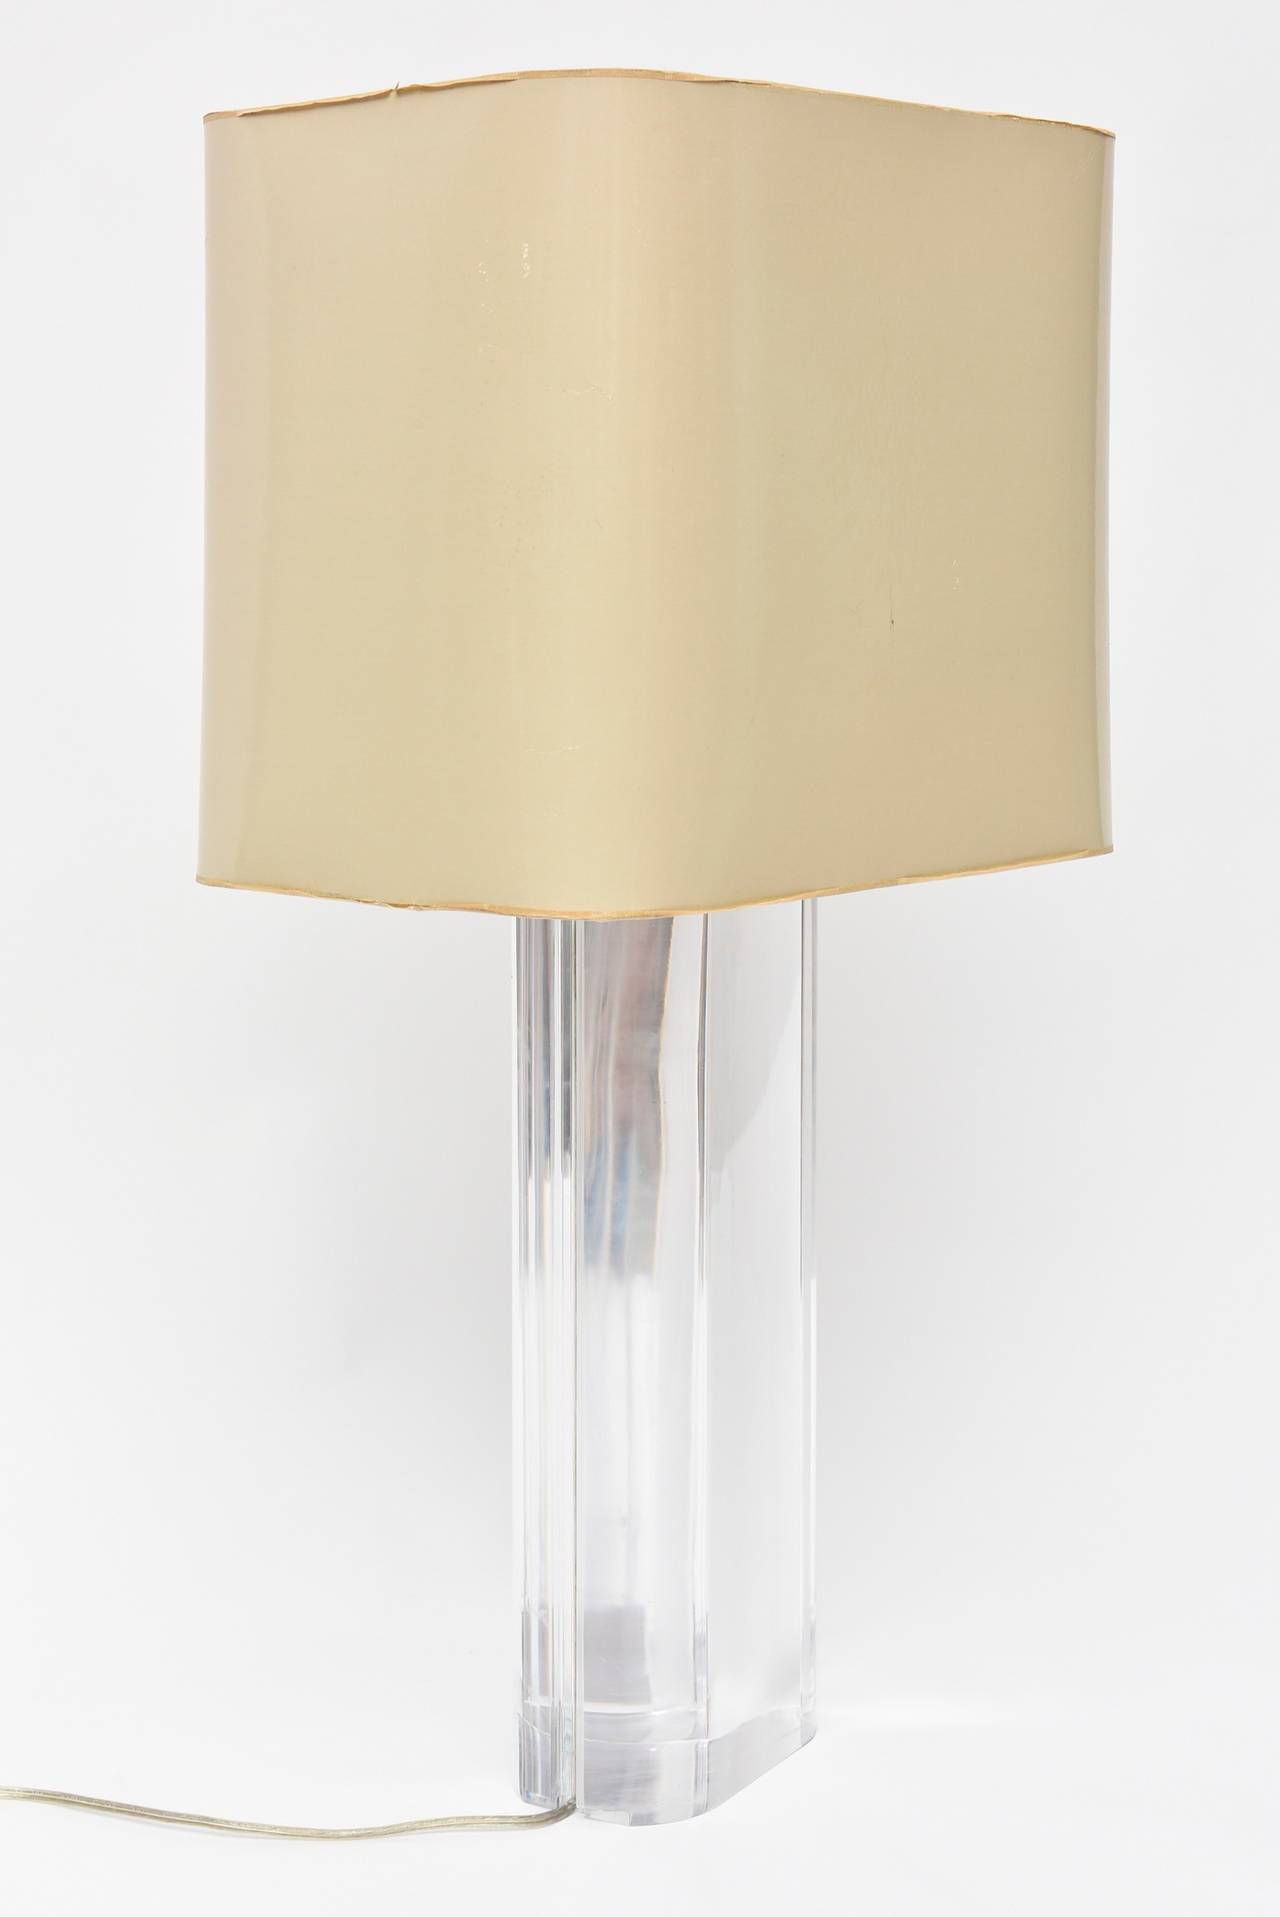 Karl Springer Oval Lucite Table Lamp In Excellent Condition For Sale In West Palm Beach, FL